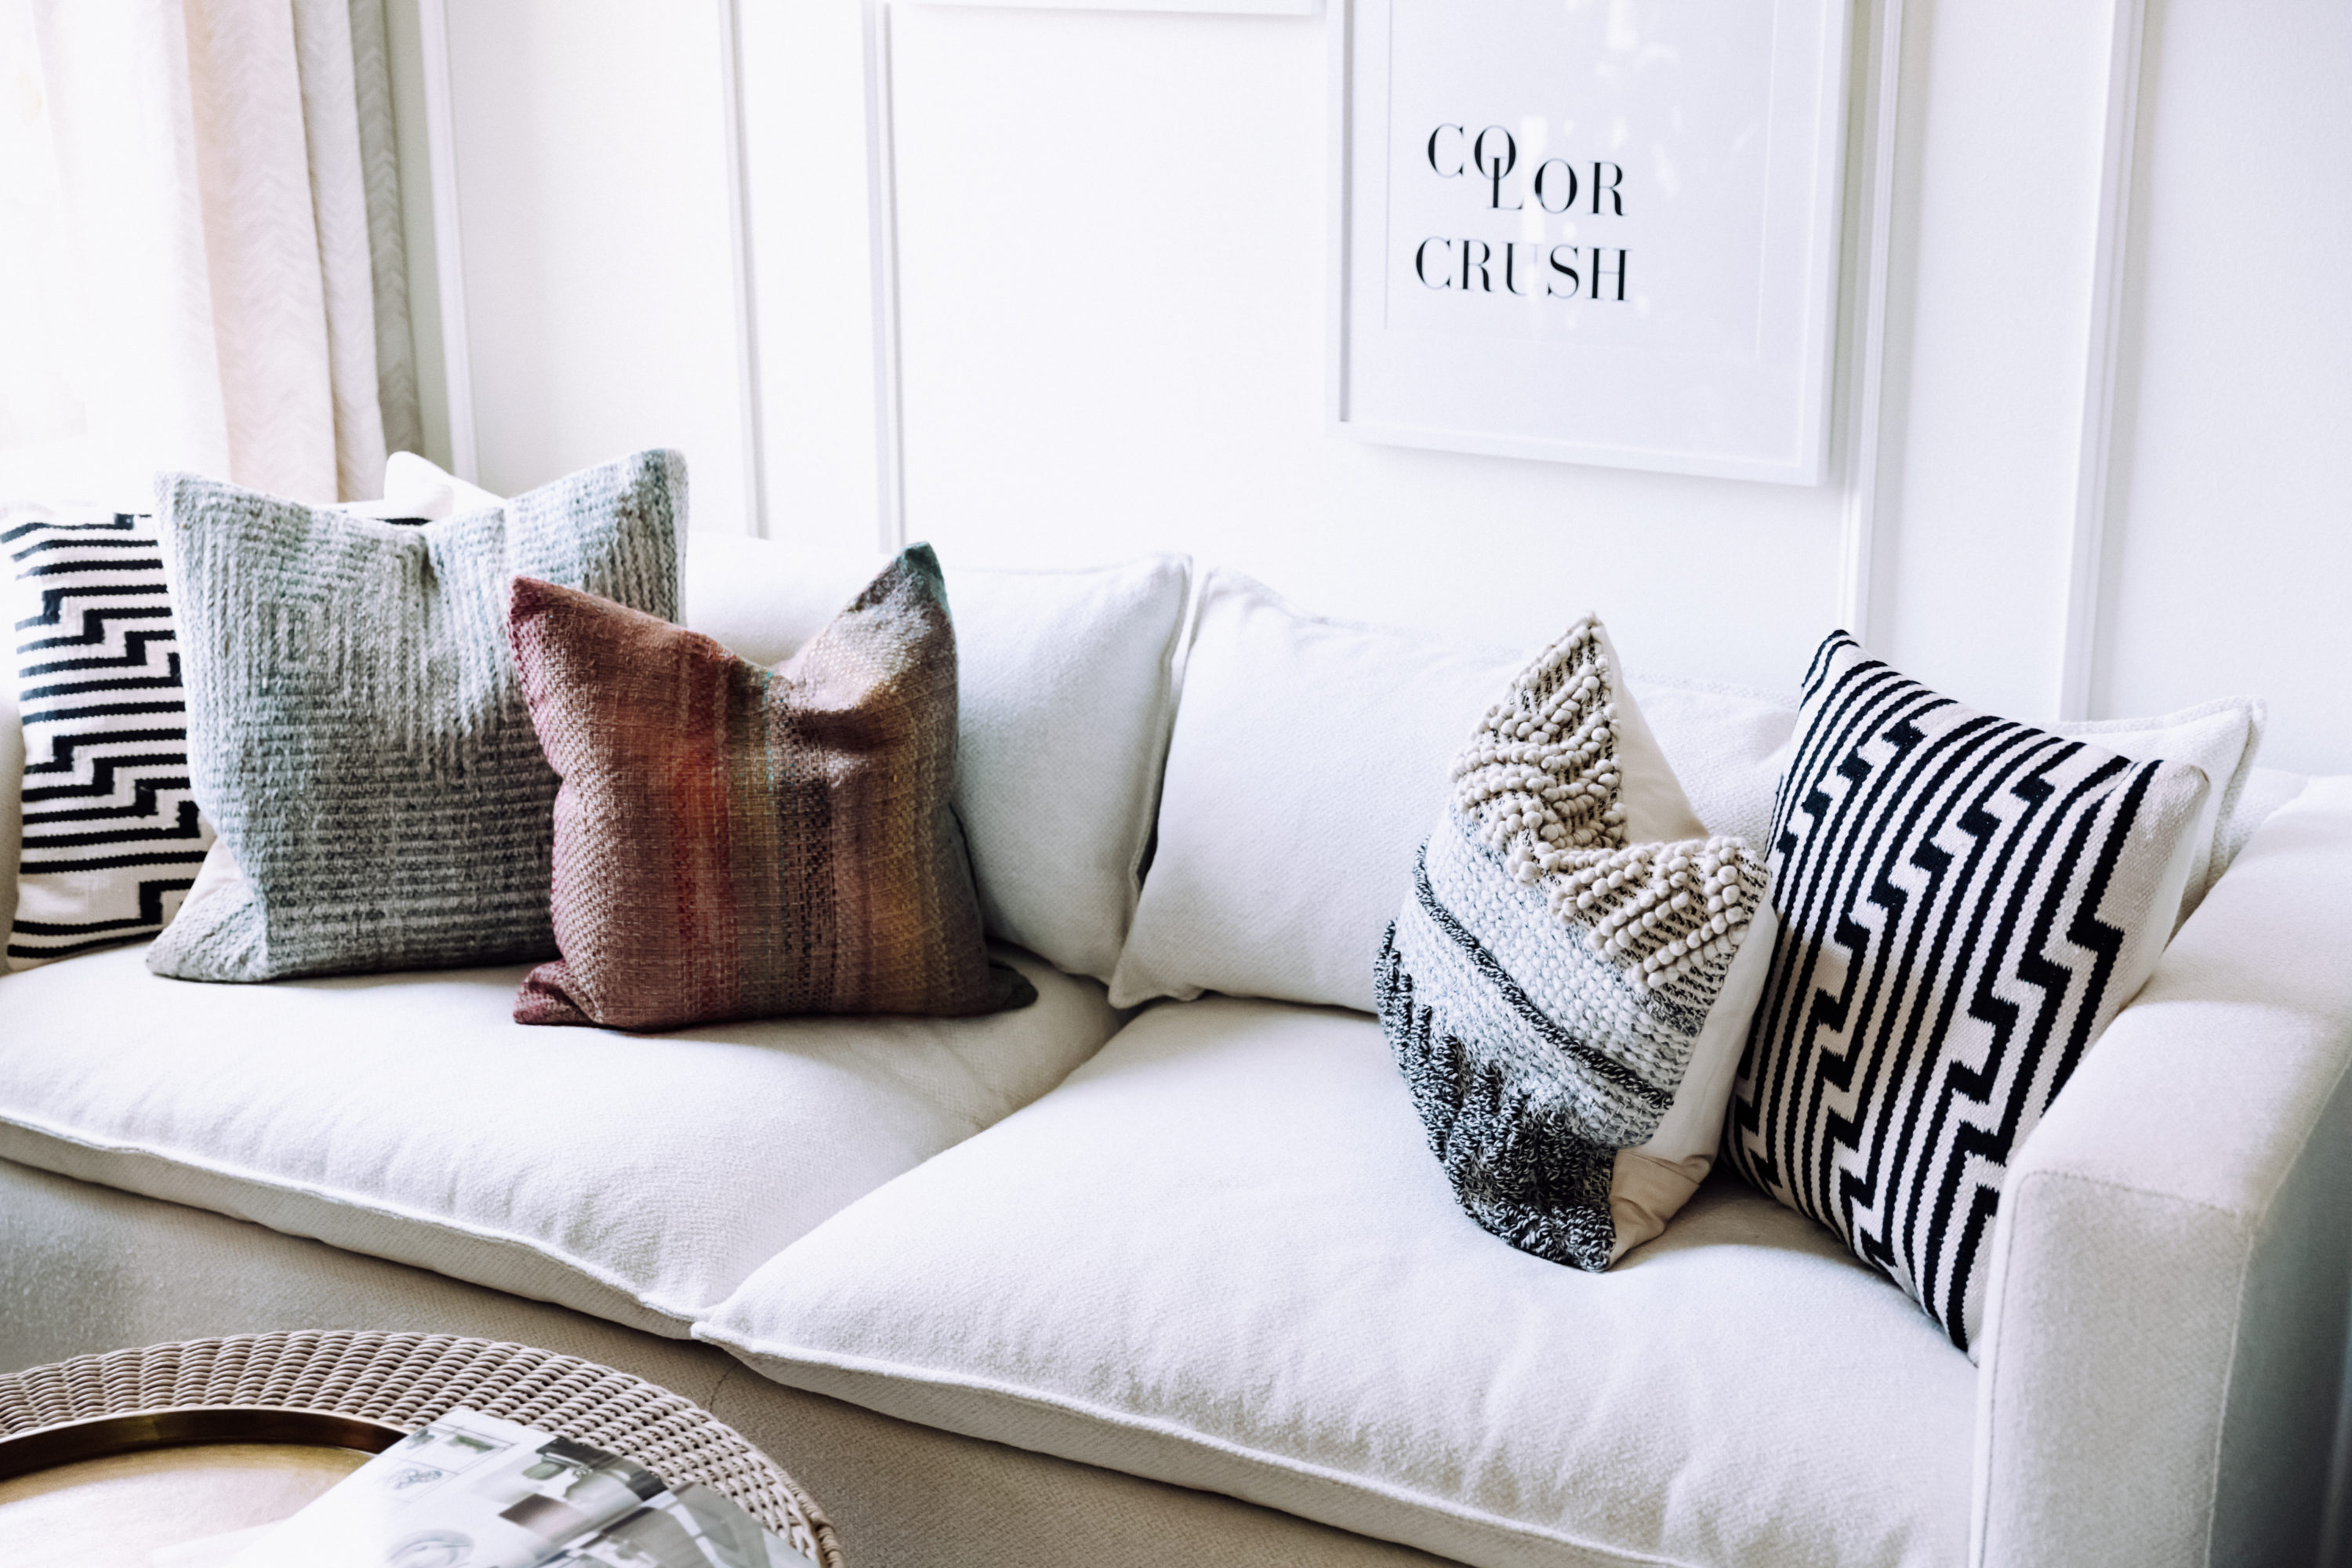 color crush living room makeover with